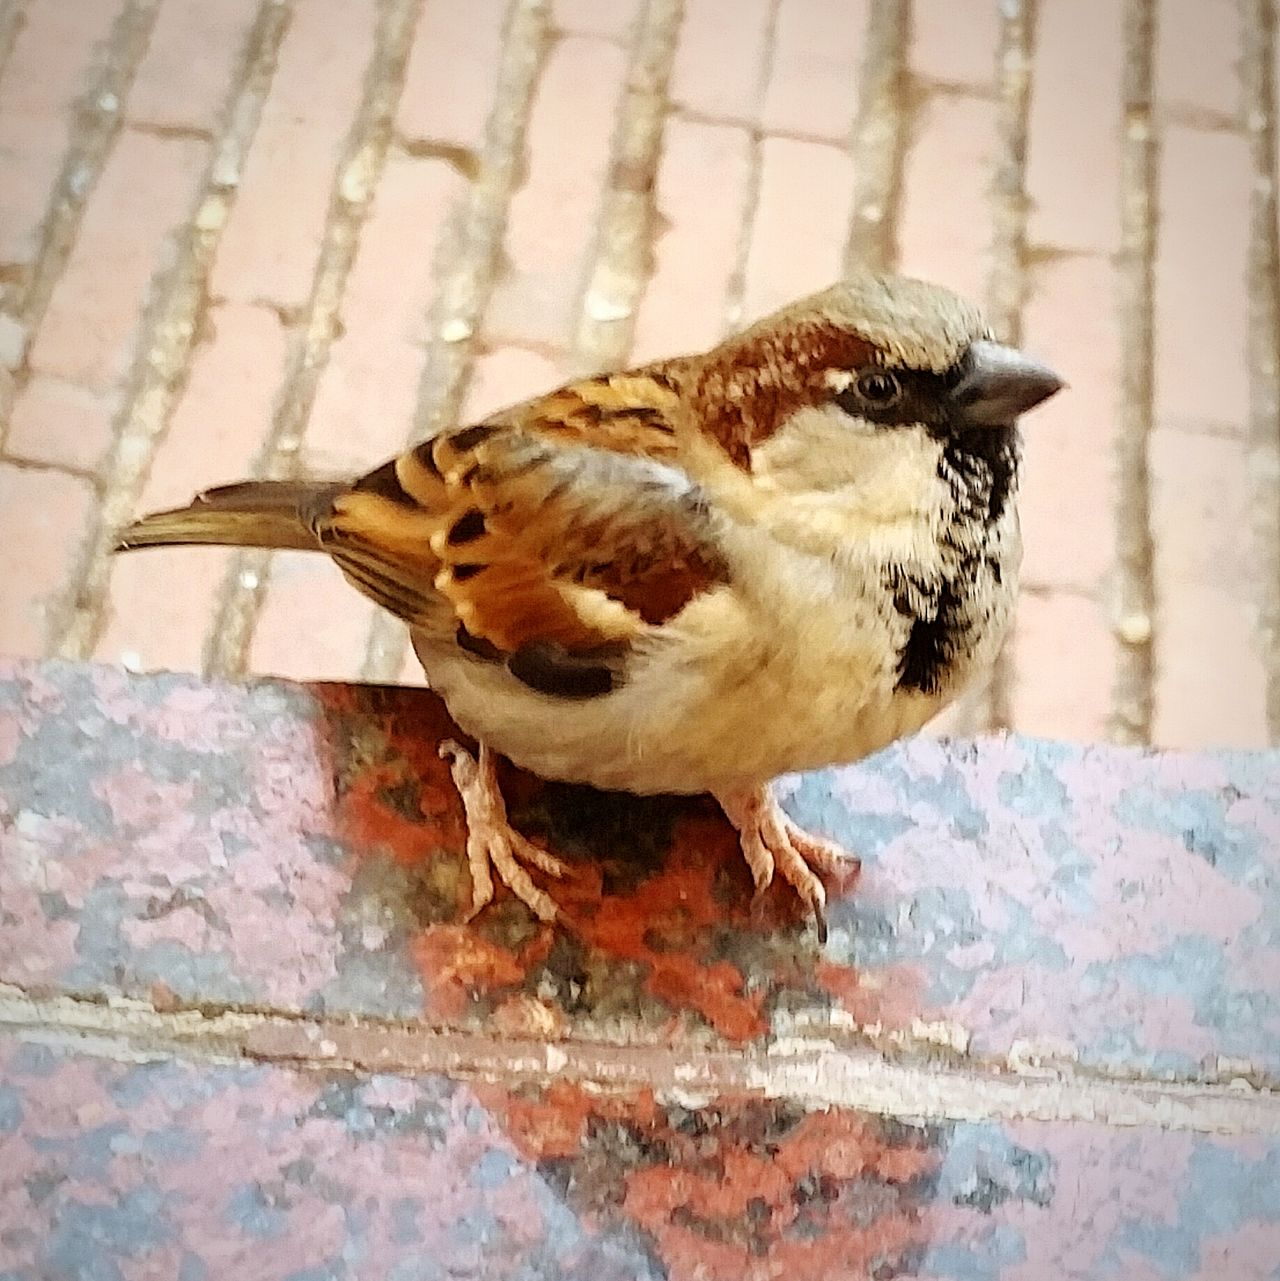 Animal Themes One Animal Animals In The Wild Bird High Angle View Animal Wildlife Outdoors No People Day Nature Sparrow Close-up Beauty In Nature Mammal Barcelona♡♥♡♥♡ Barcelona Streets